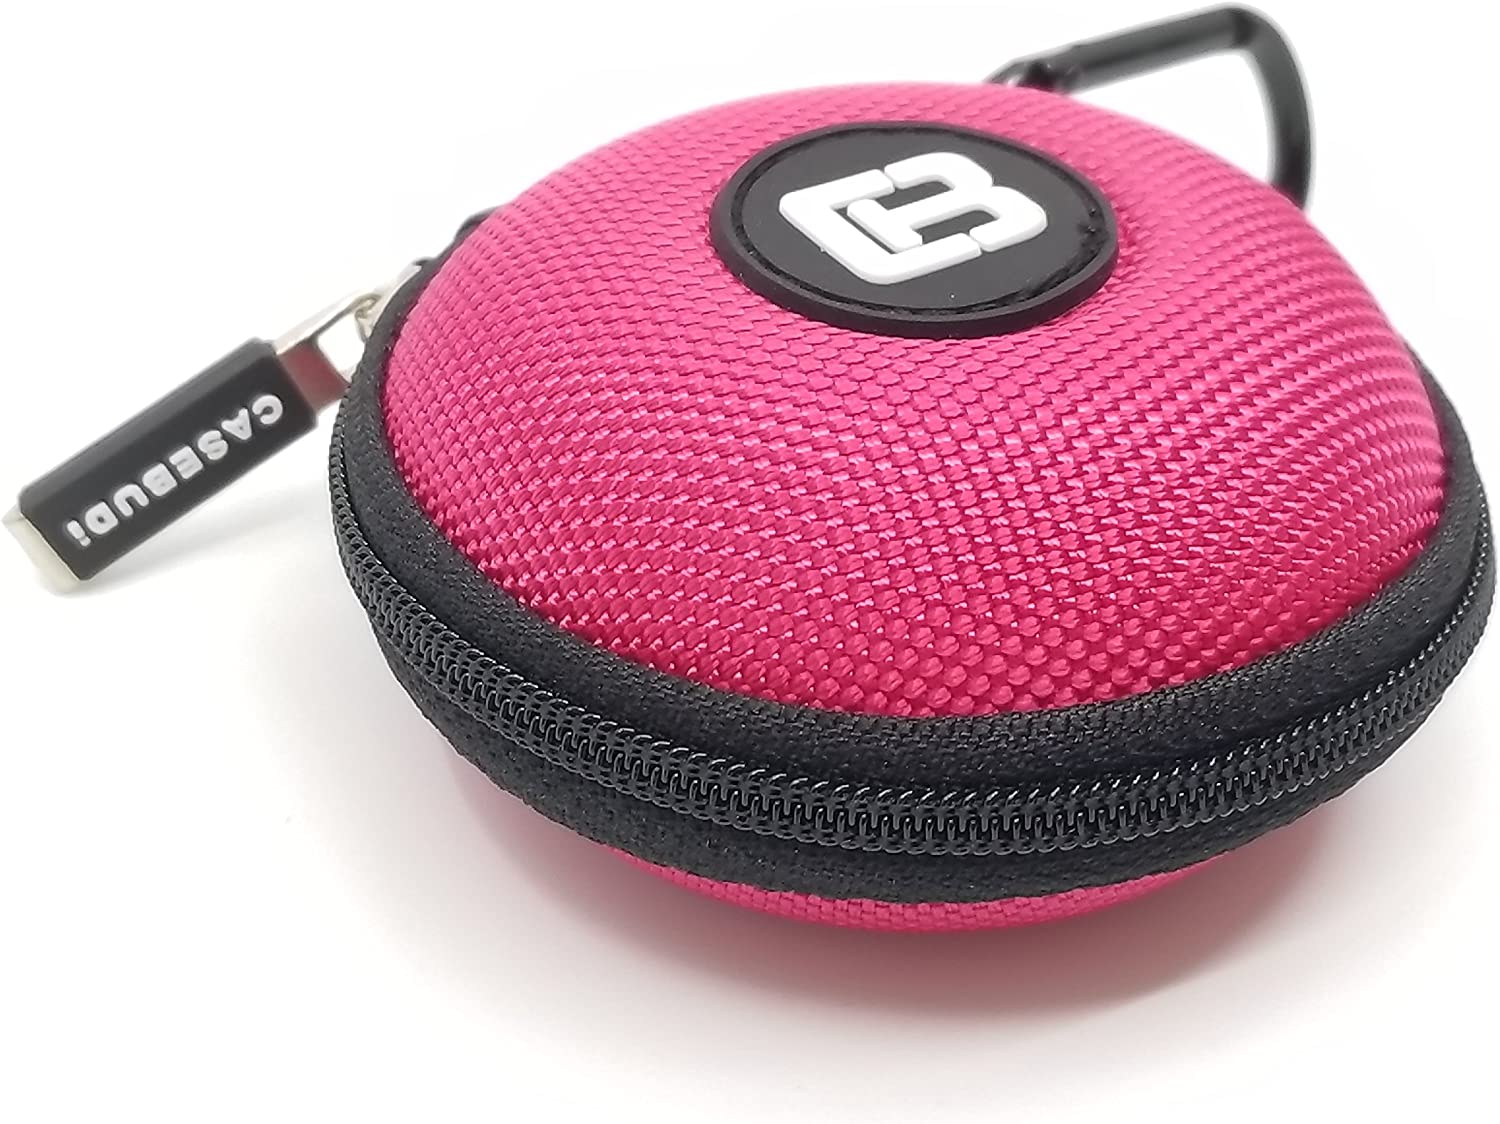 CASEBUDi Round Earbud and Phone Charger Storage Case with Carabiner | Pink Ballistic Nylon